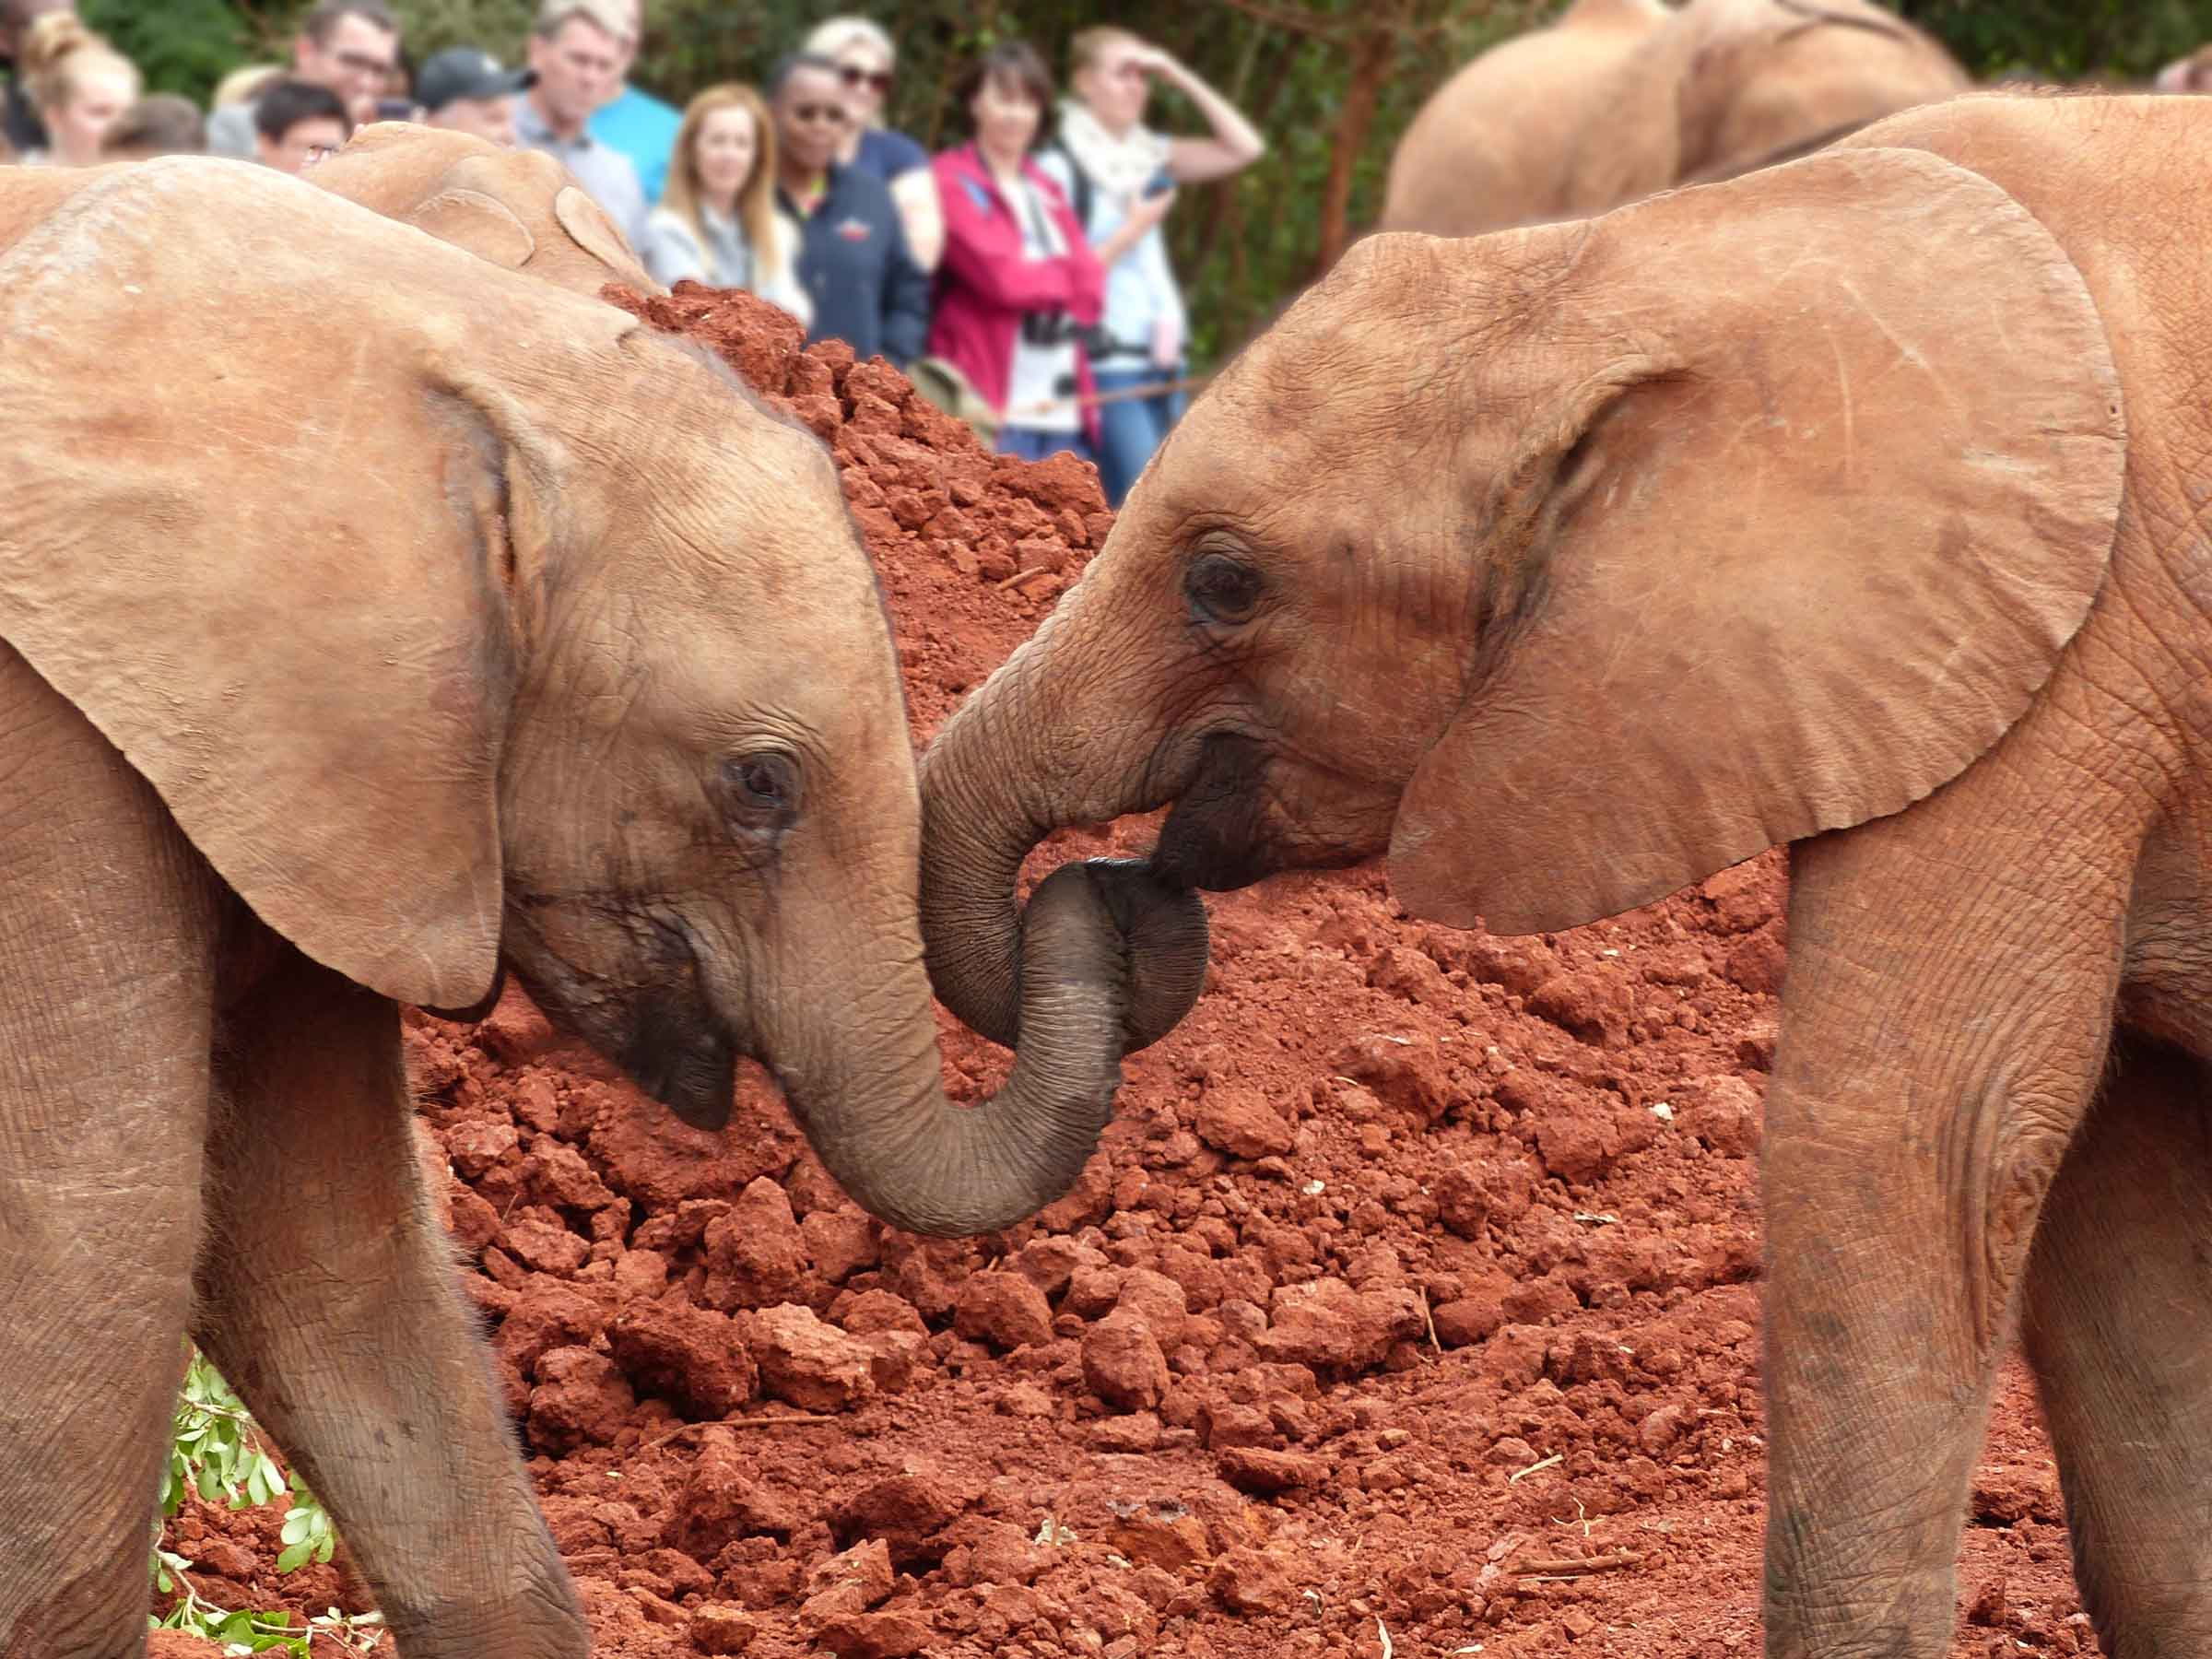 Two elephant calves playing